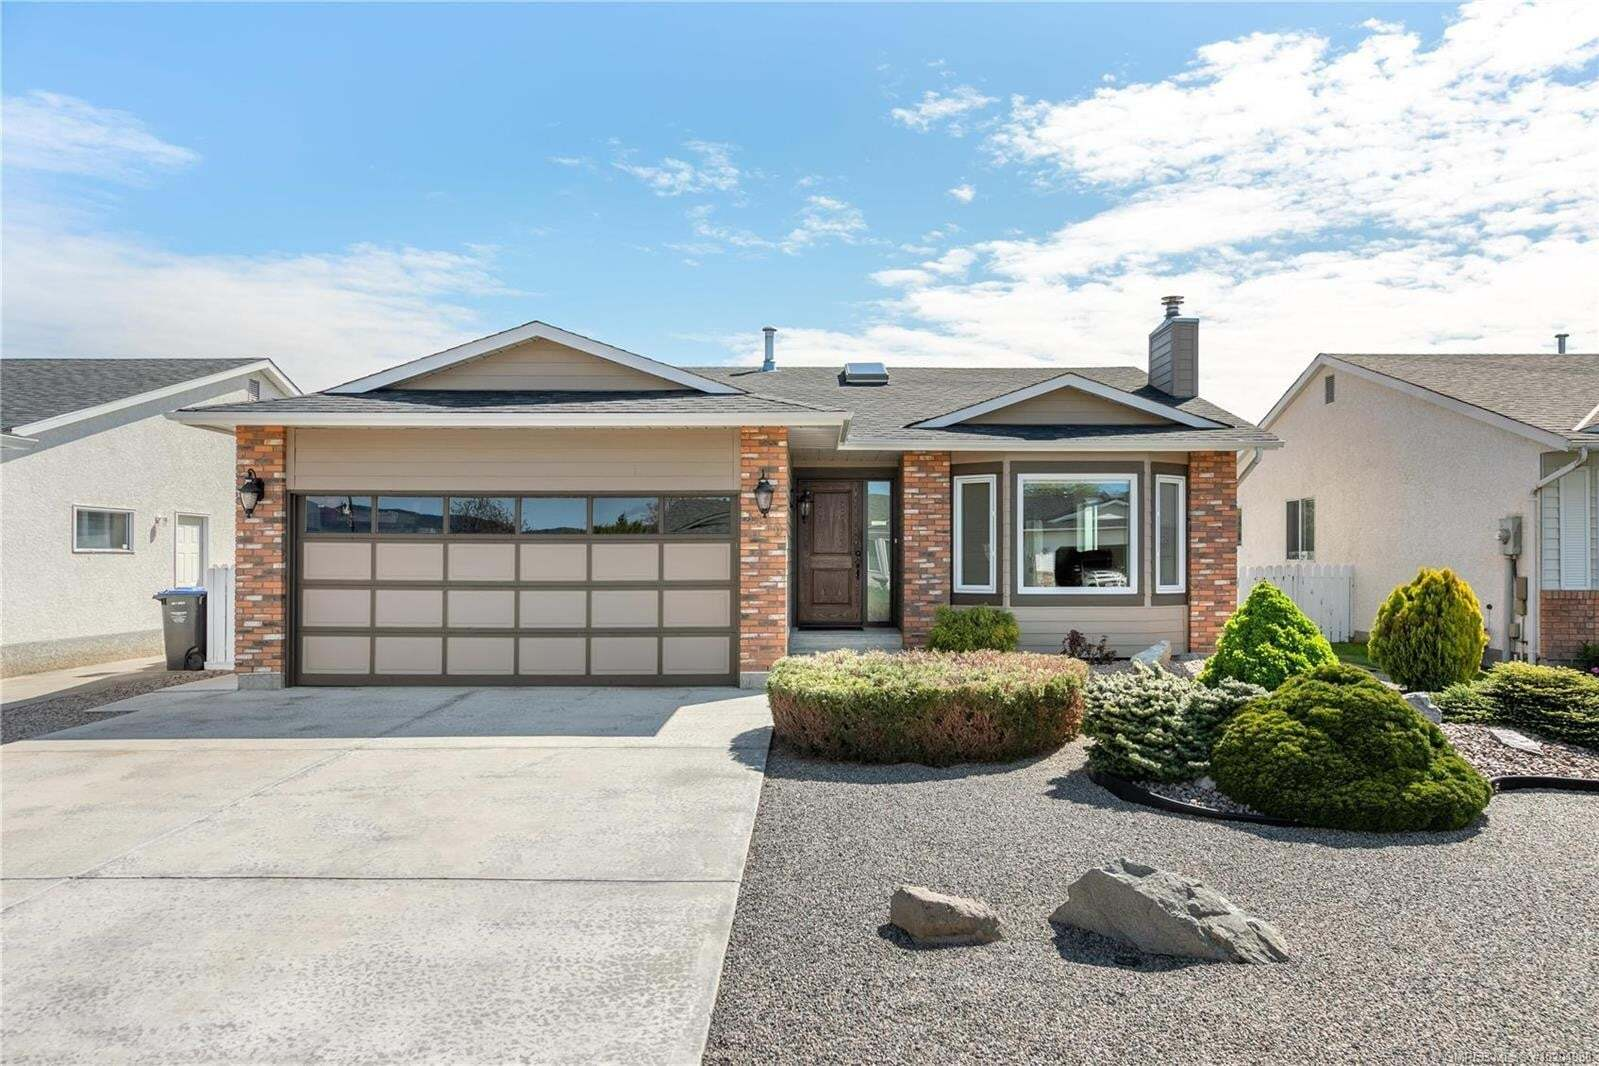 House for sale at 3439 Silverberry Rd Kelowna British Columbia - MLS: 10204980